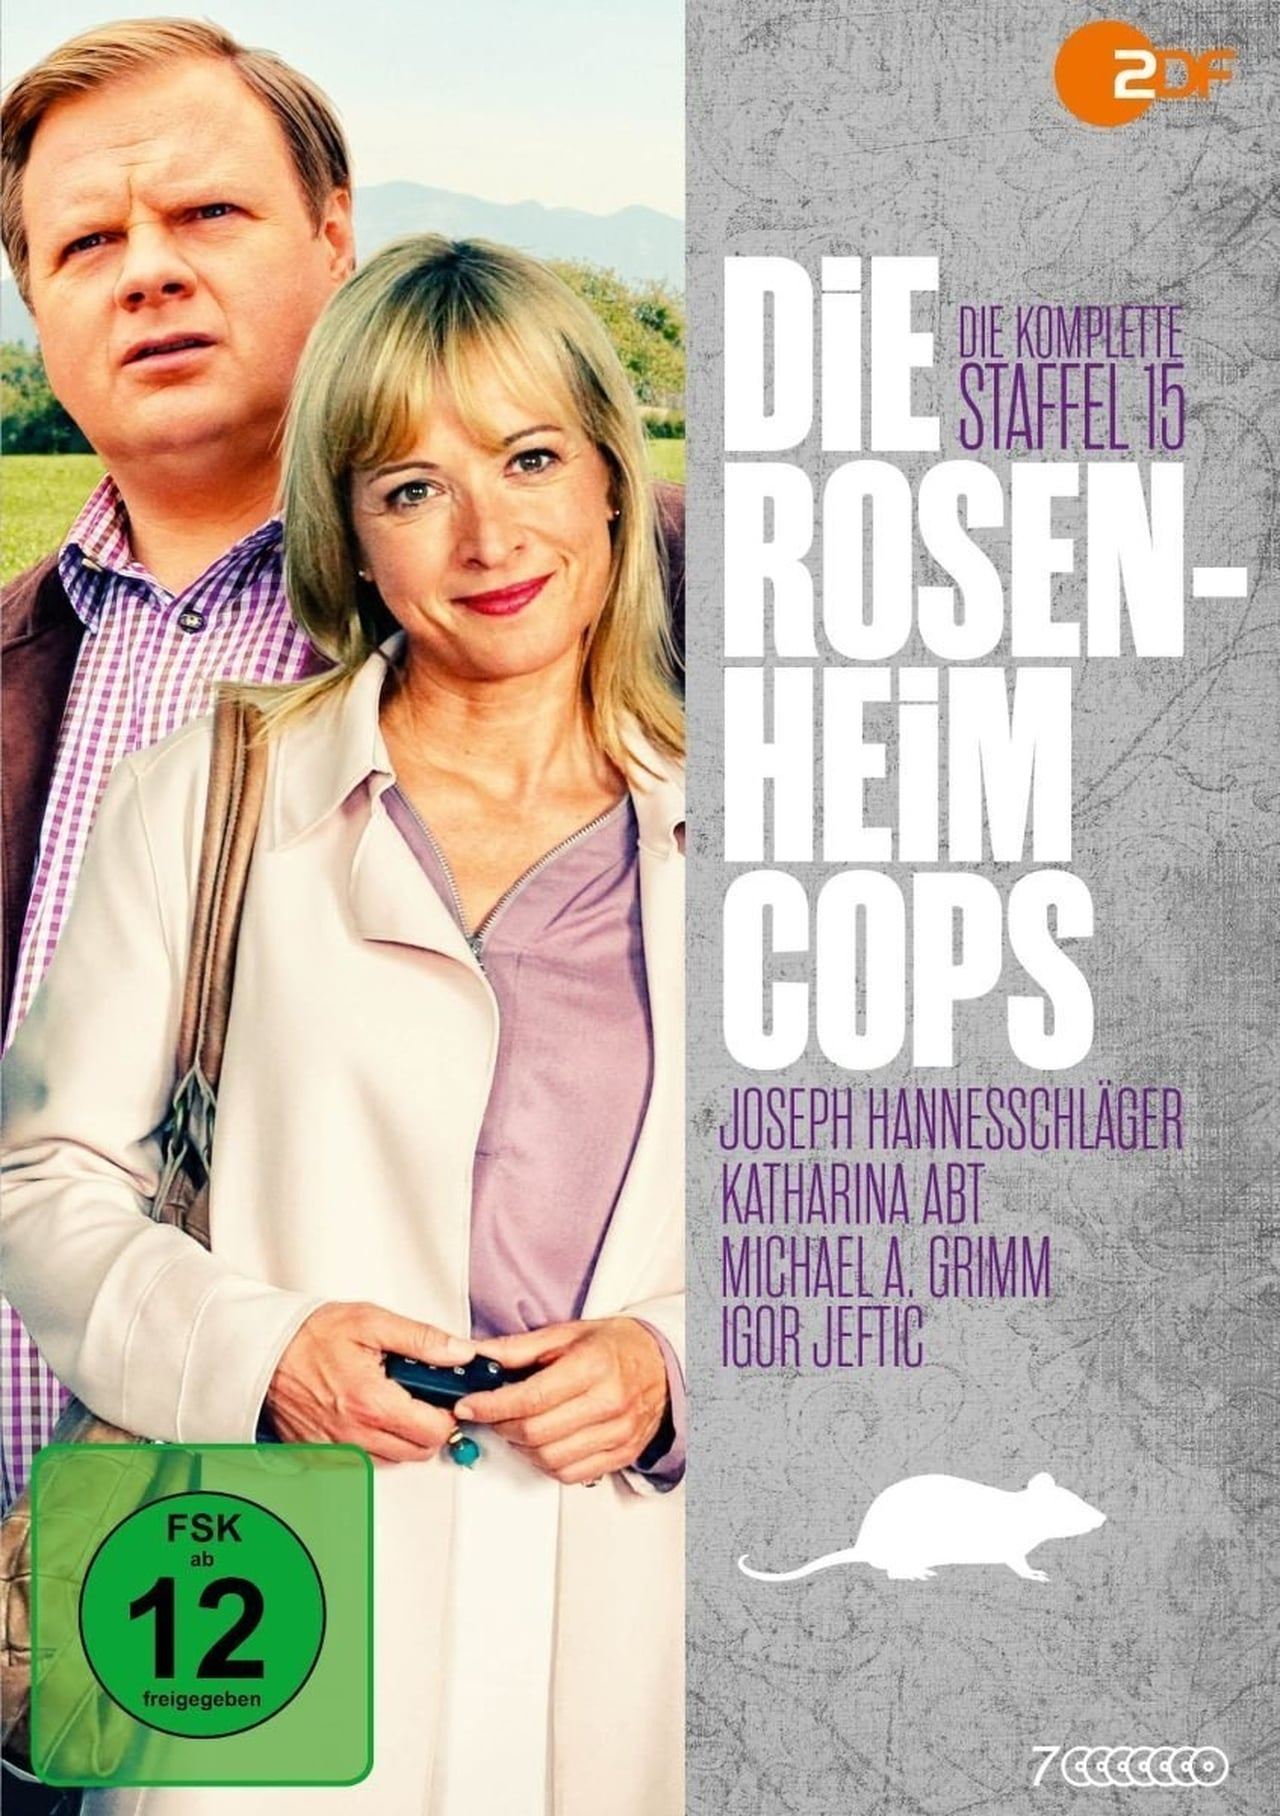 Putlocker The Rosenheim Cops Season 15 (2015)